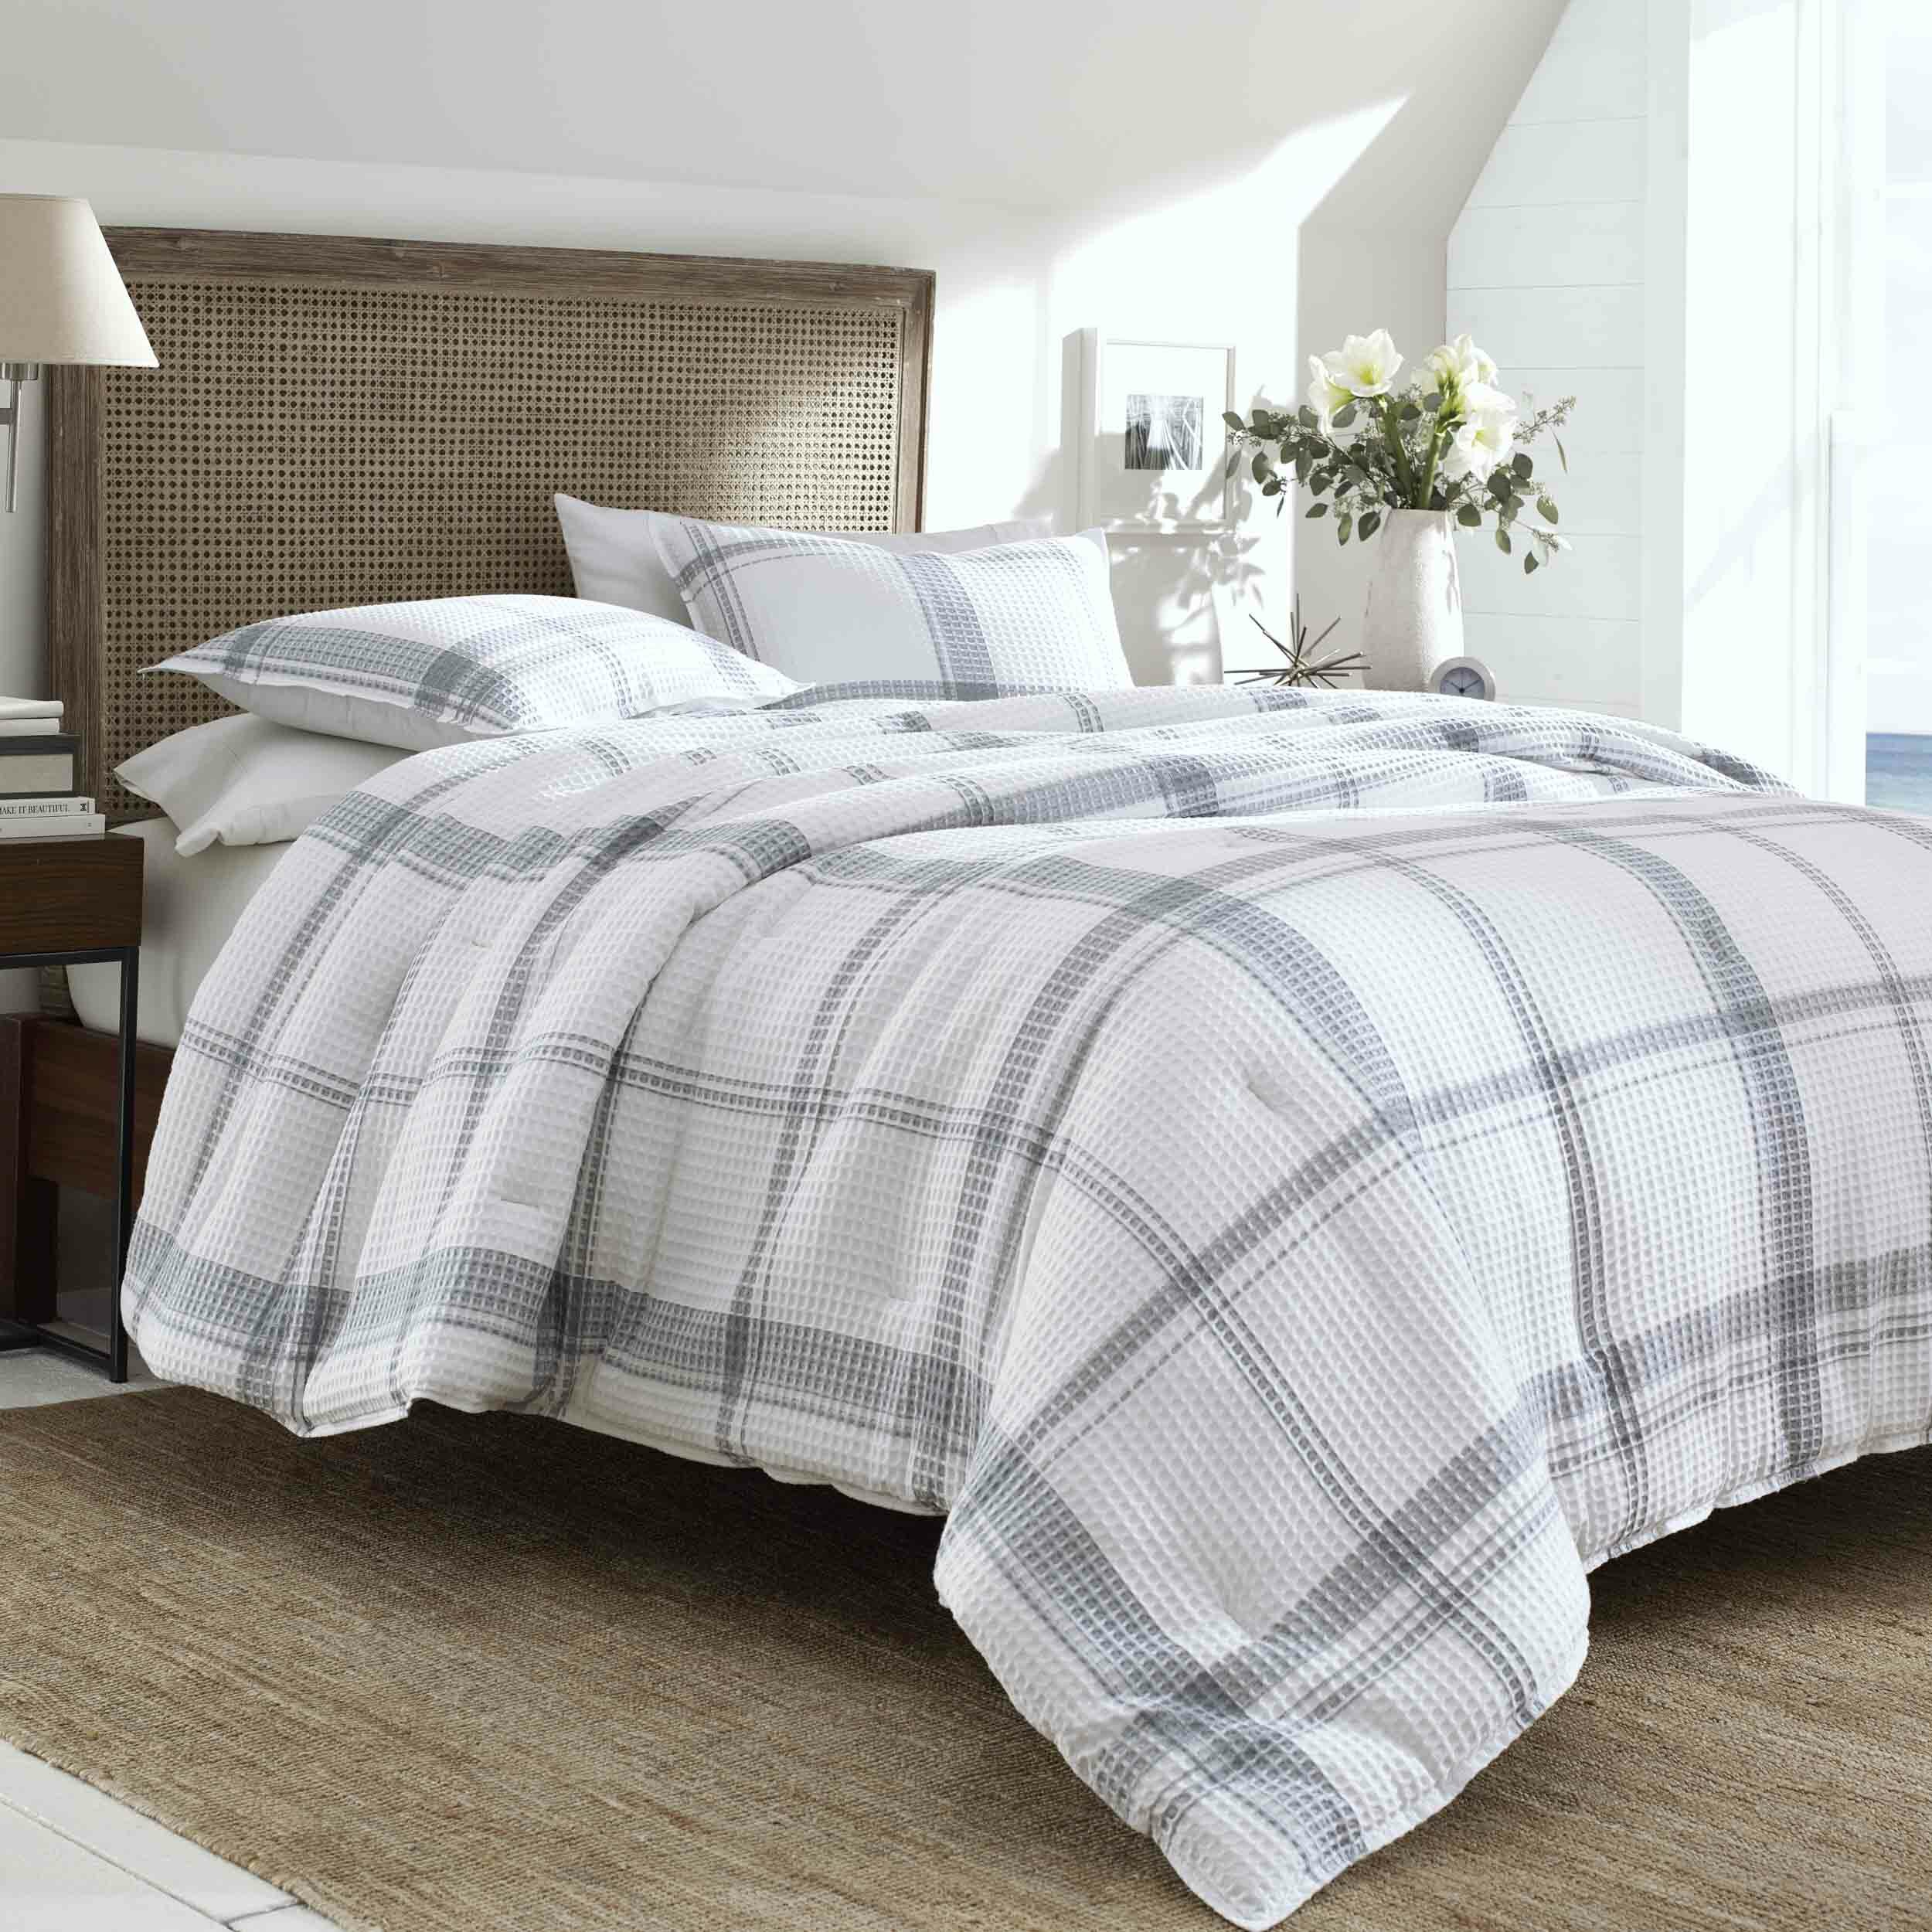 Blue Woolrich Ryland Comforter Reversible Oversized Jacquard Check Plaid Cabin Lodge Rustic Printed Modern Ultra Soft Down Alternative Hypoallergenic All Season Bedding Set Full Queen Mimbarschool Com Ng